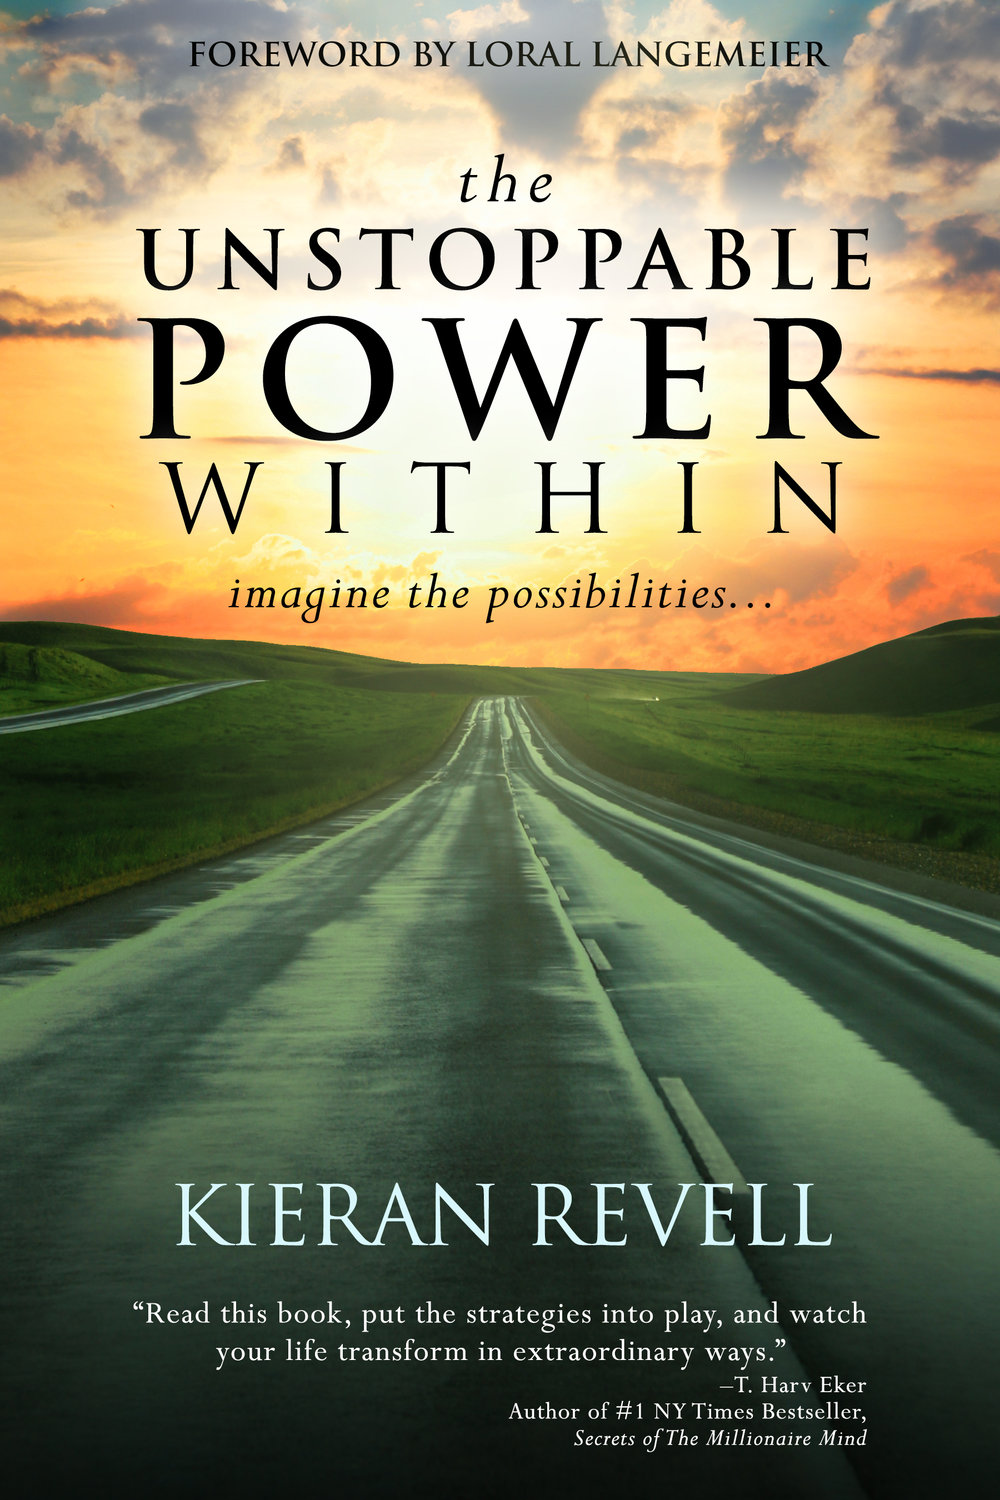 The Unstoppable Power Within - By kieran revell